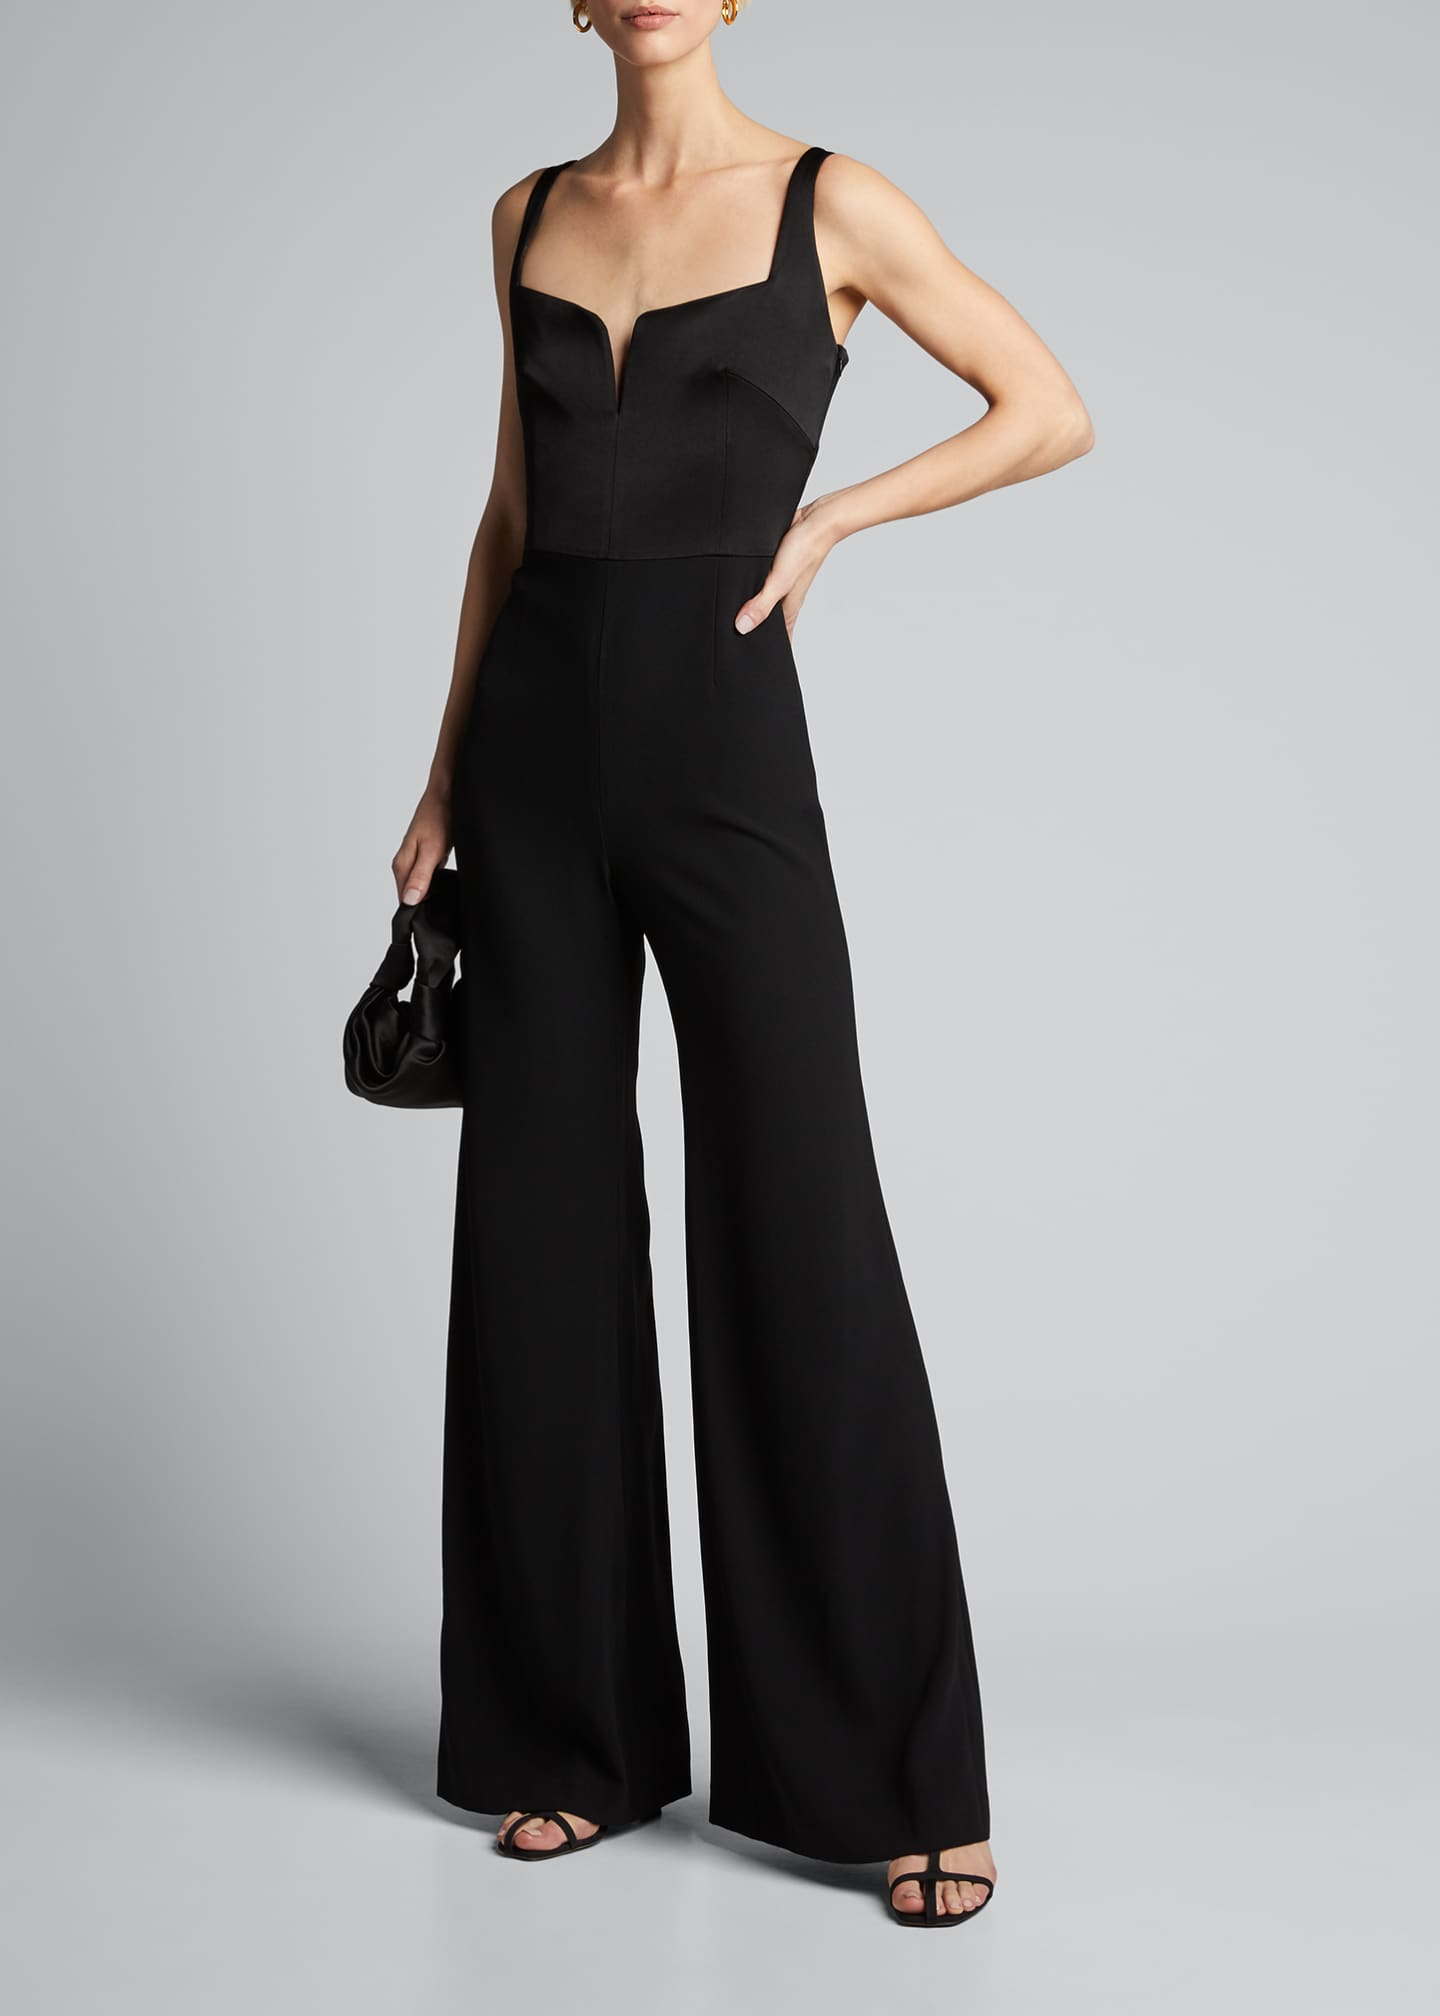 Sleeveless Wide-Leg Corset Jumpsuit